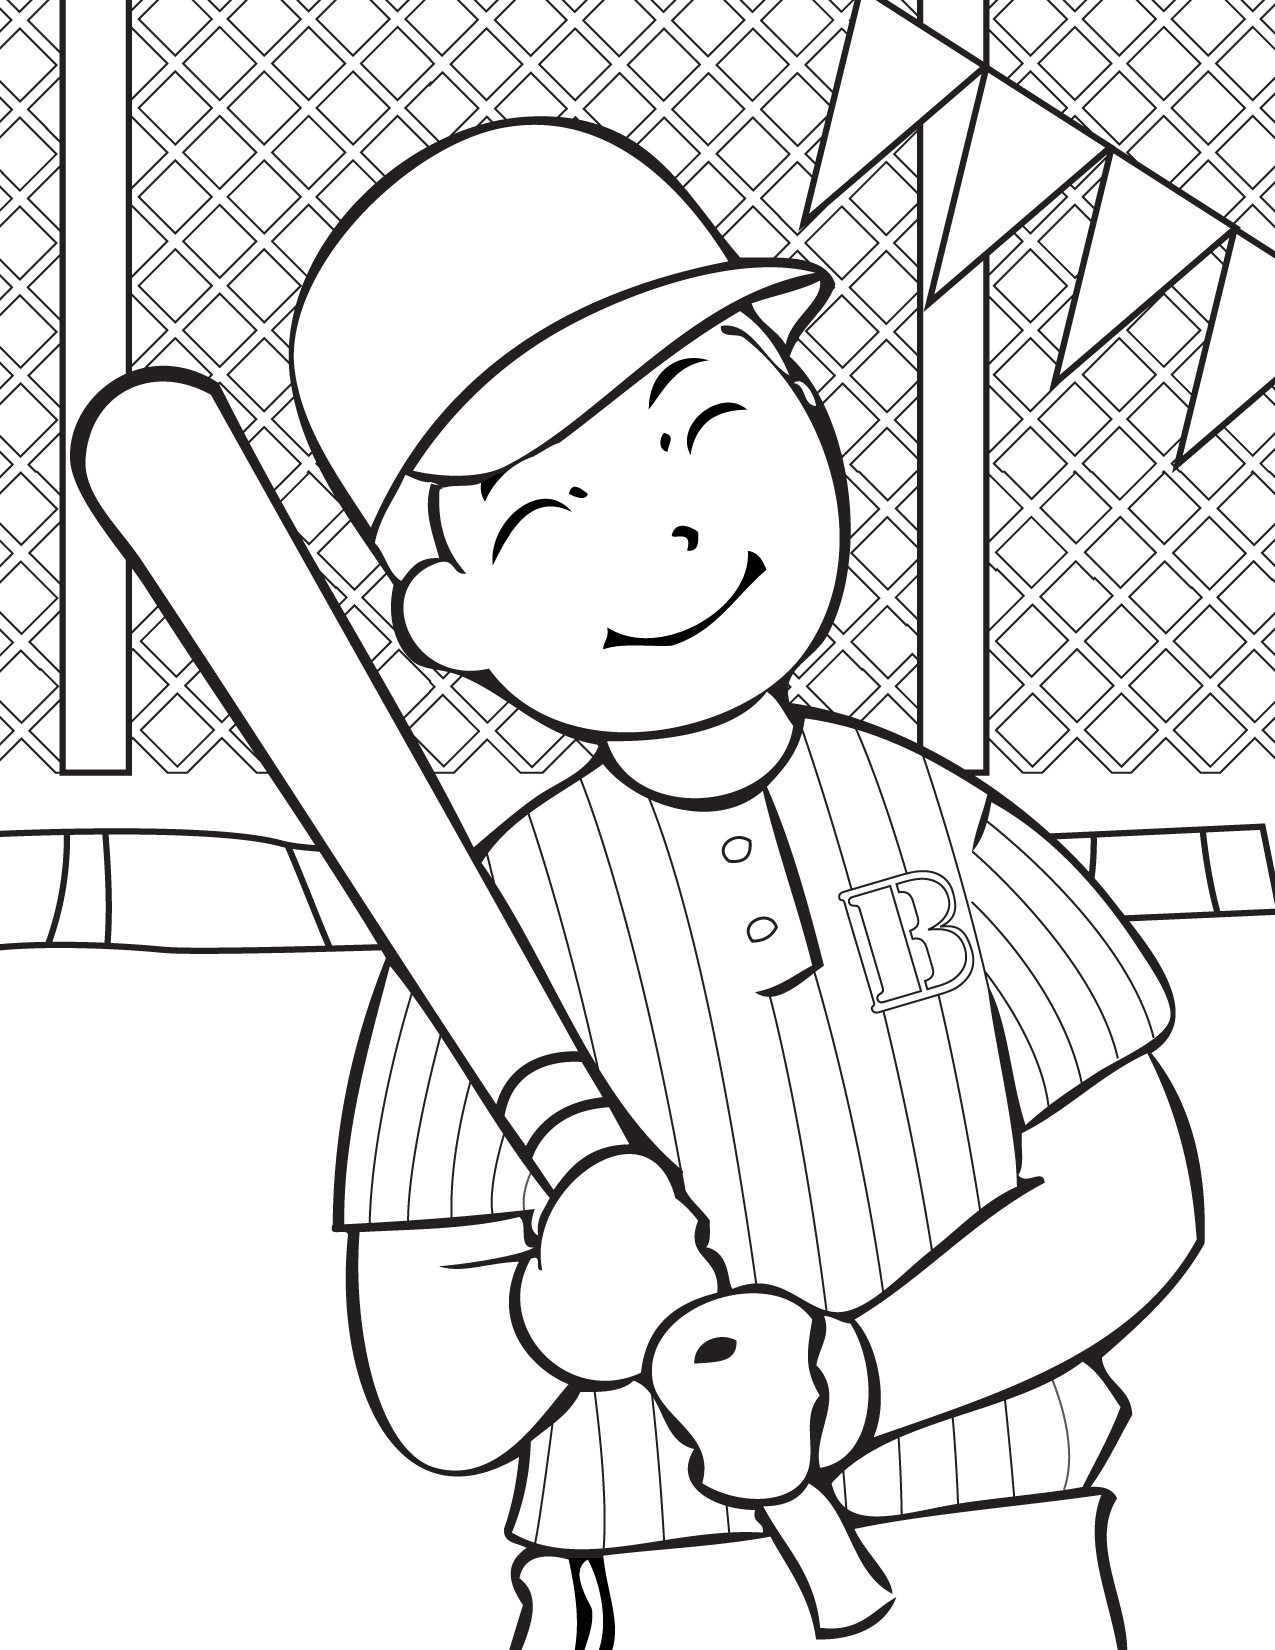 Coloring Sheets For Kids 10  Free Printable Baseball Coloring Pages for Kids Best